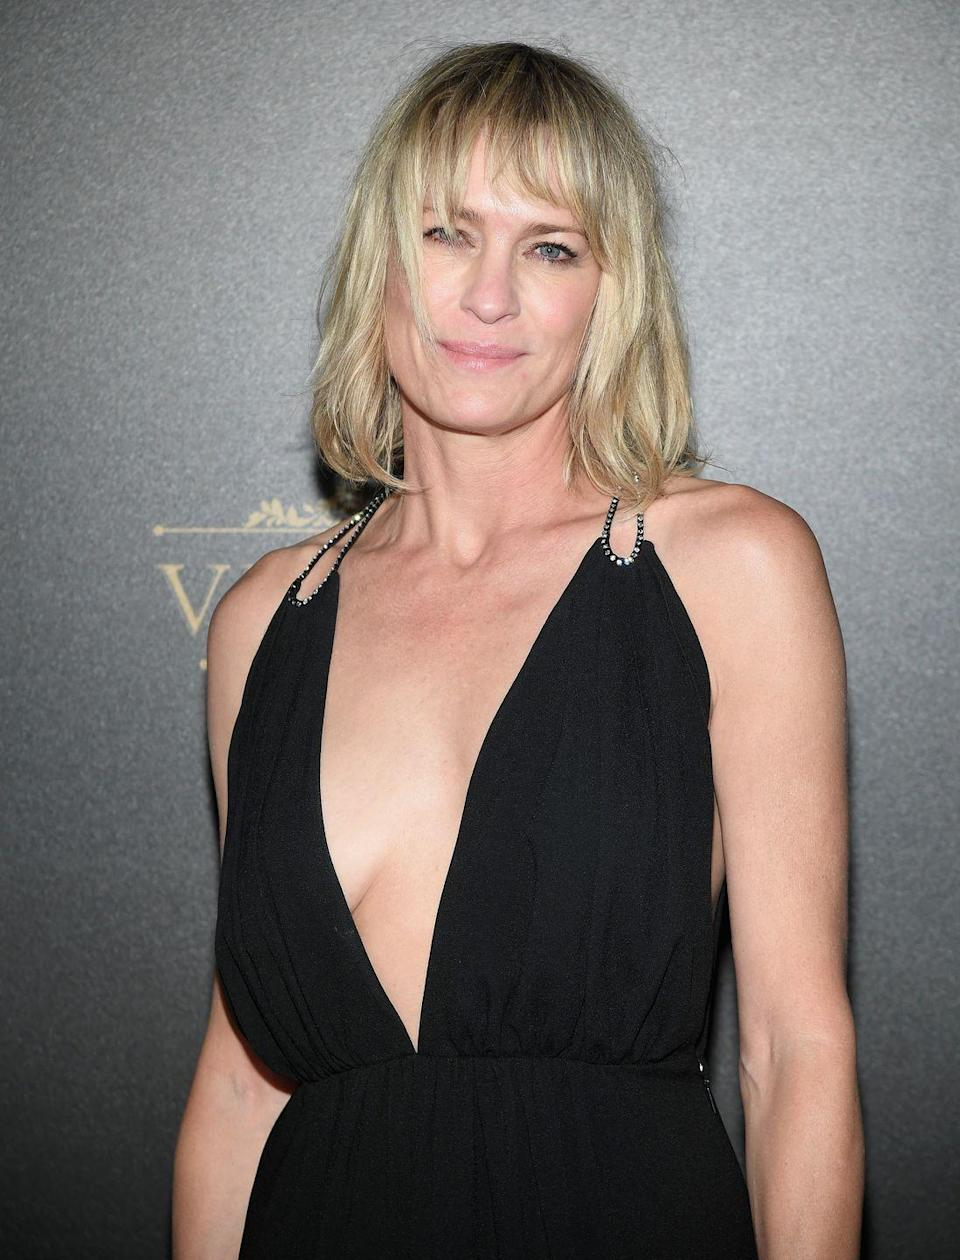 """<p>Robin Wright loves Botox and isn't afraid to admit it. """"Everybody fucking does it,"""" she told the <a href=""""http://www.telegraph.co.uk/culture/tvandradio/10621566/Robin-Wright-on-House-of-Cards-Botox-and-getting-married-again.html"""" rel=""""nofollow noopener"""" target=""""_blank"""" data-ylk=""""slk:Telegraph"""" class=""""link rapid-noclick-resp"""">Telegraph</a> in 2014. """"I suppose I can't say 'everybody' because I don't know for sure, but come on. It's just the tiniest sprinkle of Botox twice a year. I think most women do 10 units, but that freezes the face and you can't move it. This is just one unit, and it's just sprinkled here and there to take the edge off... Perhaps it's not wise to put that in a magazine? But I ain't hiding anything.""""</p>"""